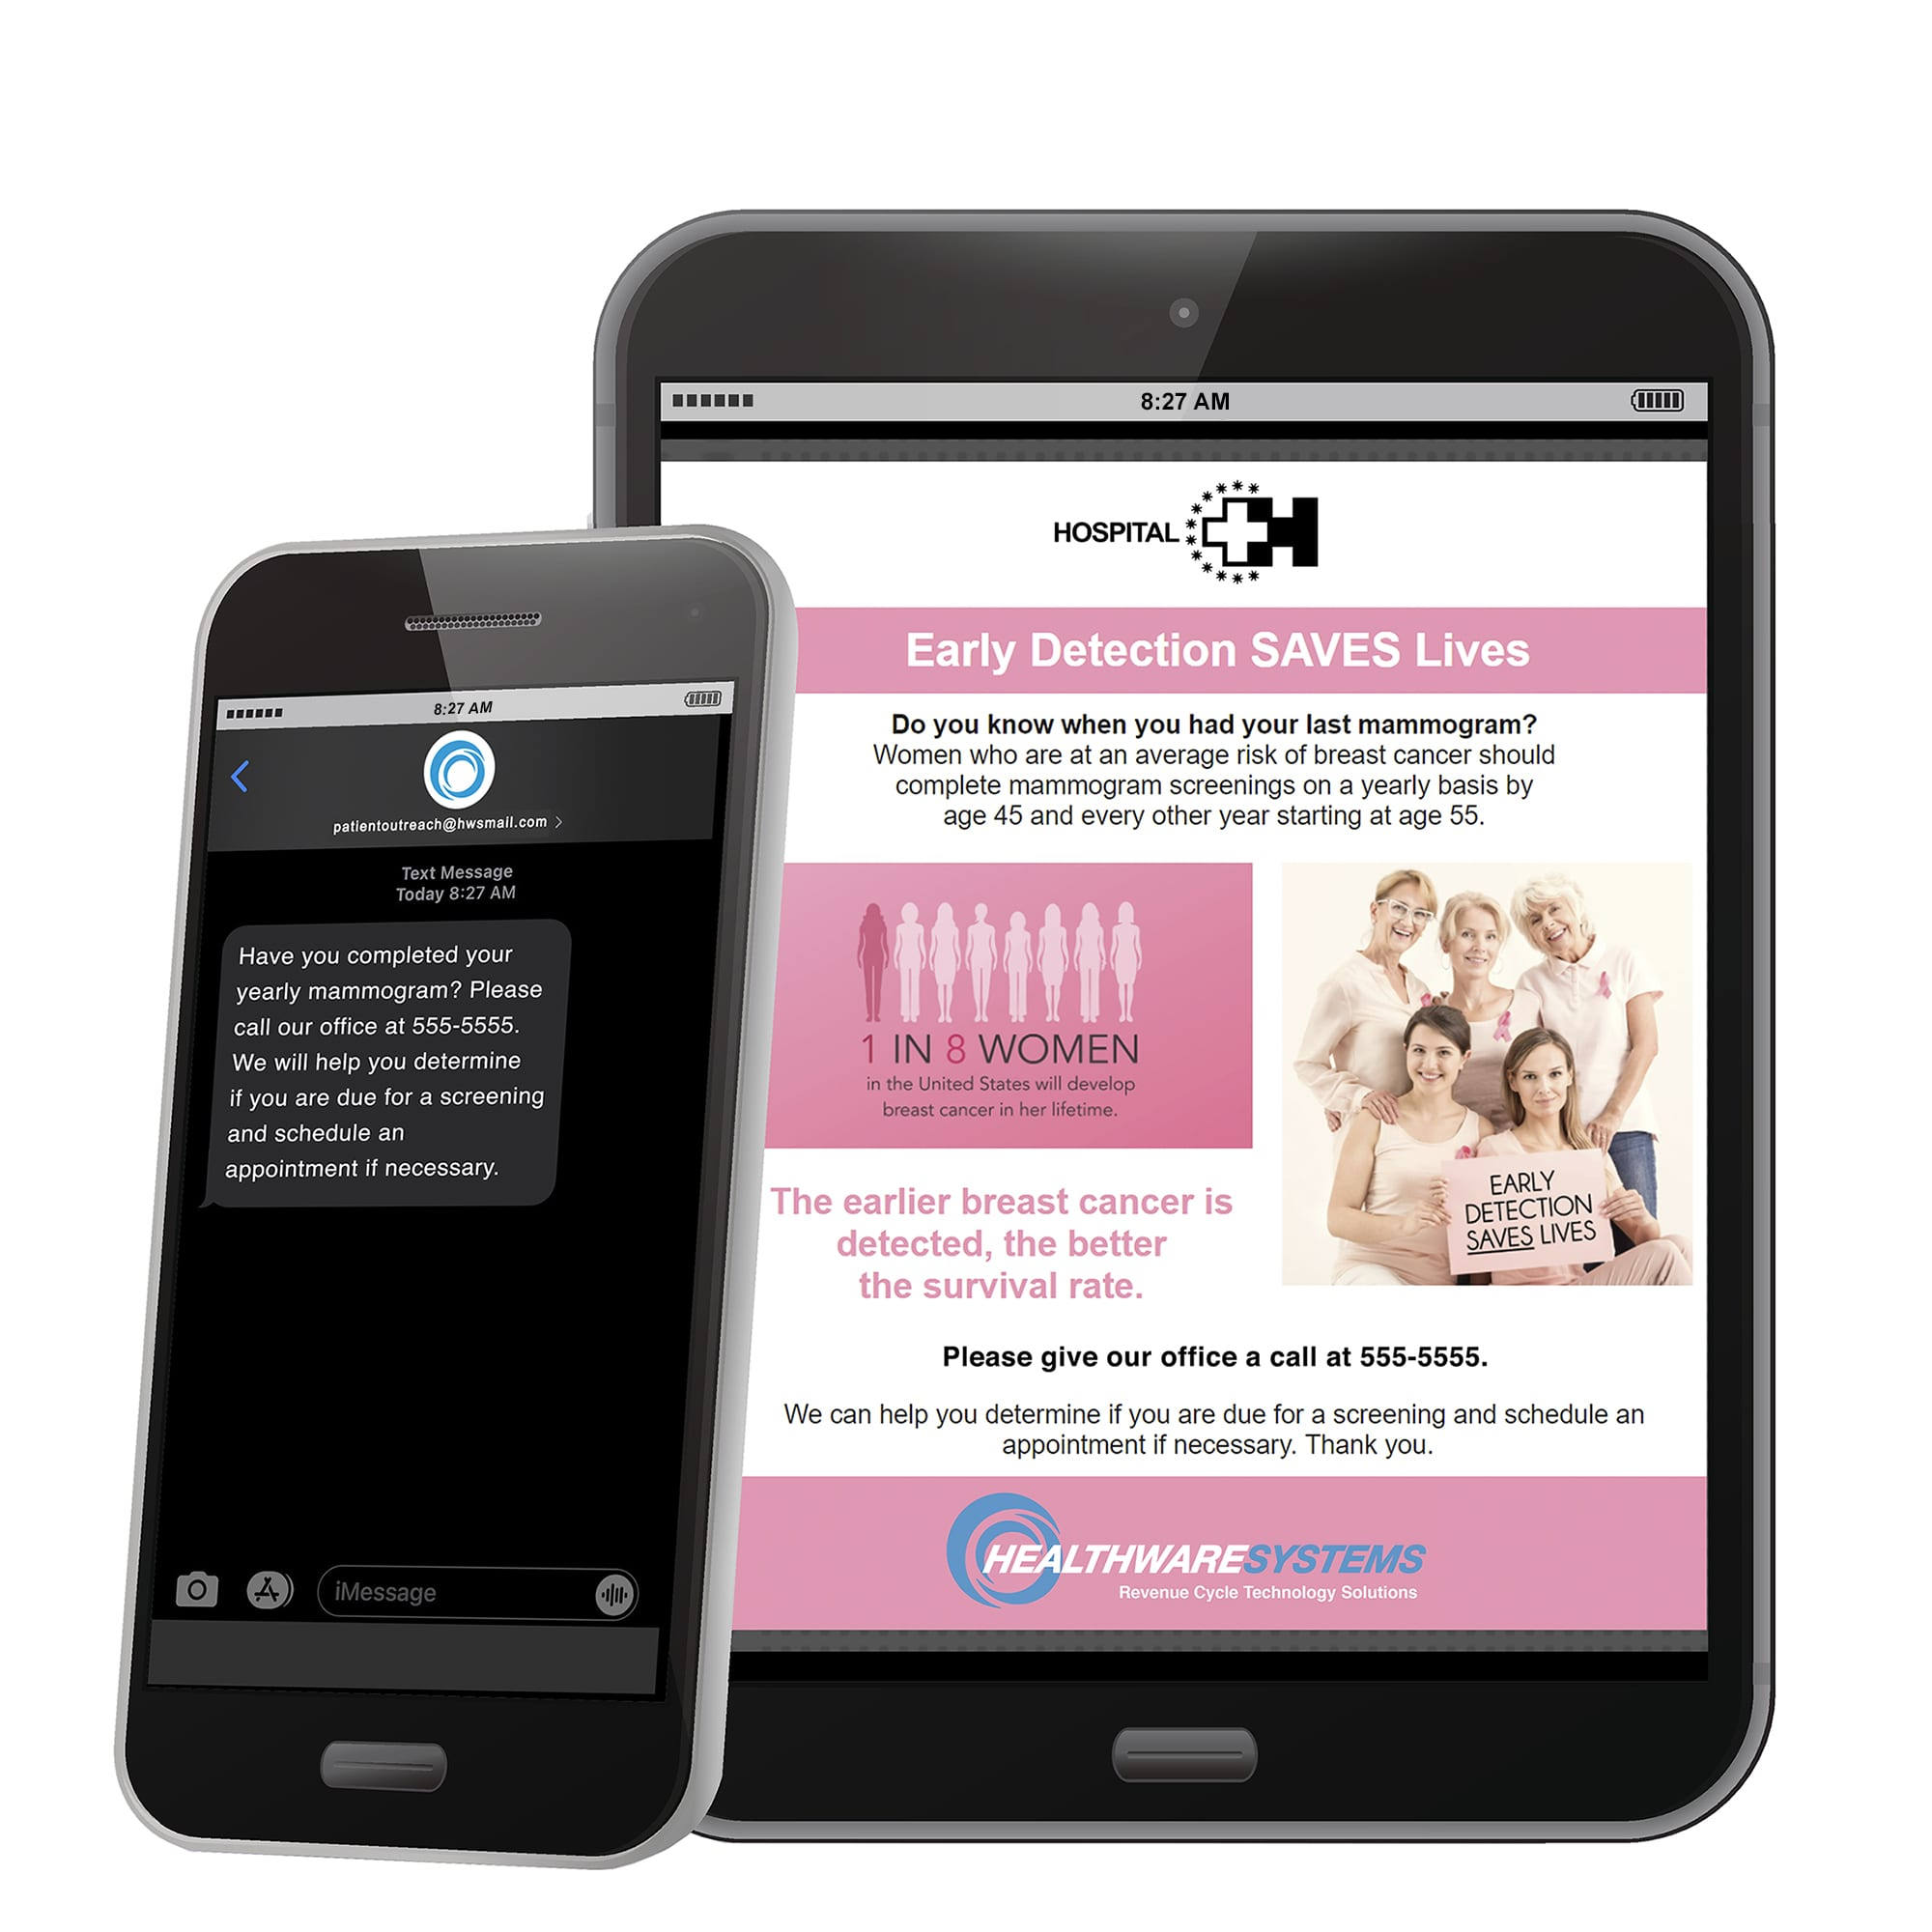 Text message and email examples for a patient outreach campaign aimed at increasing mammogram appointments.